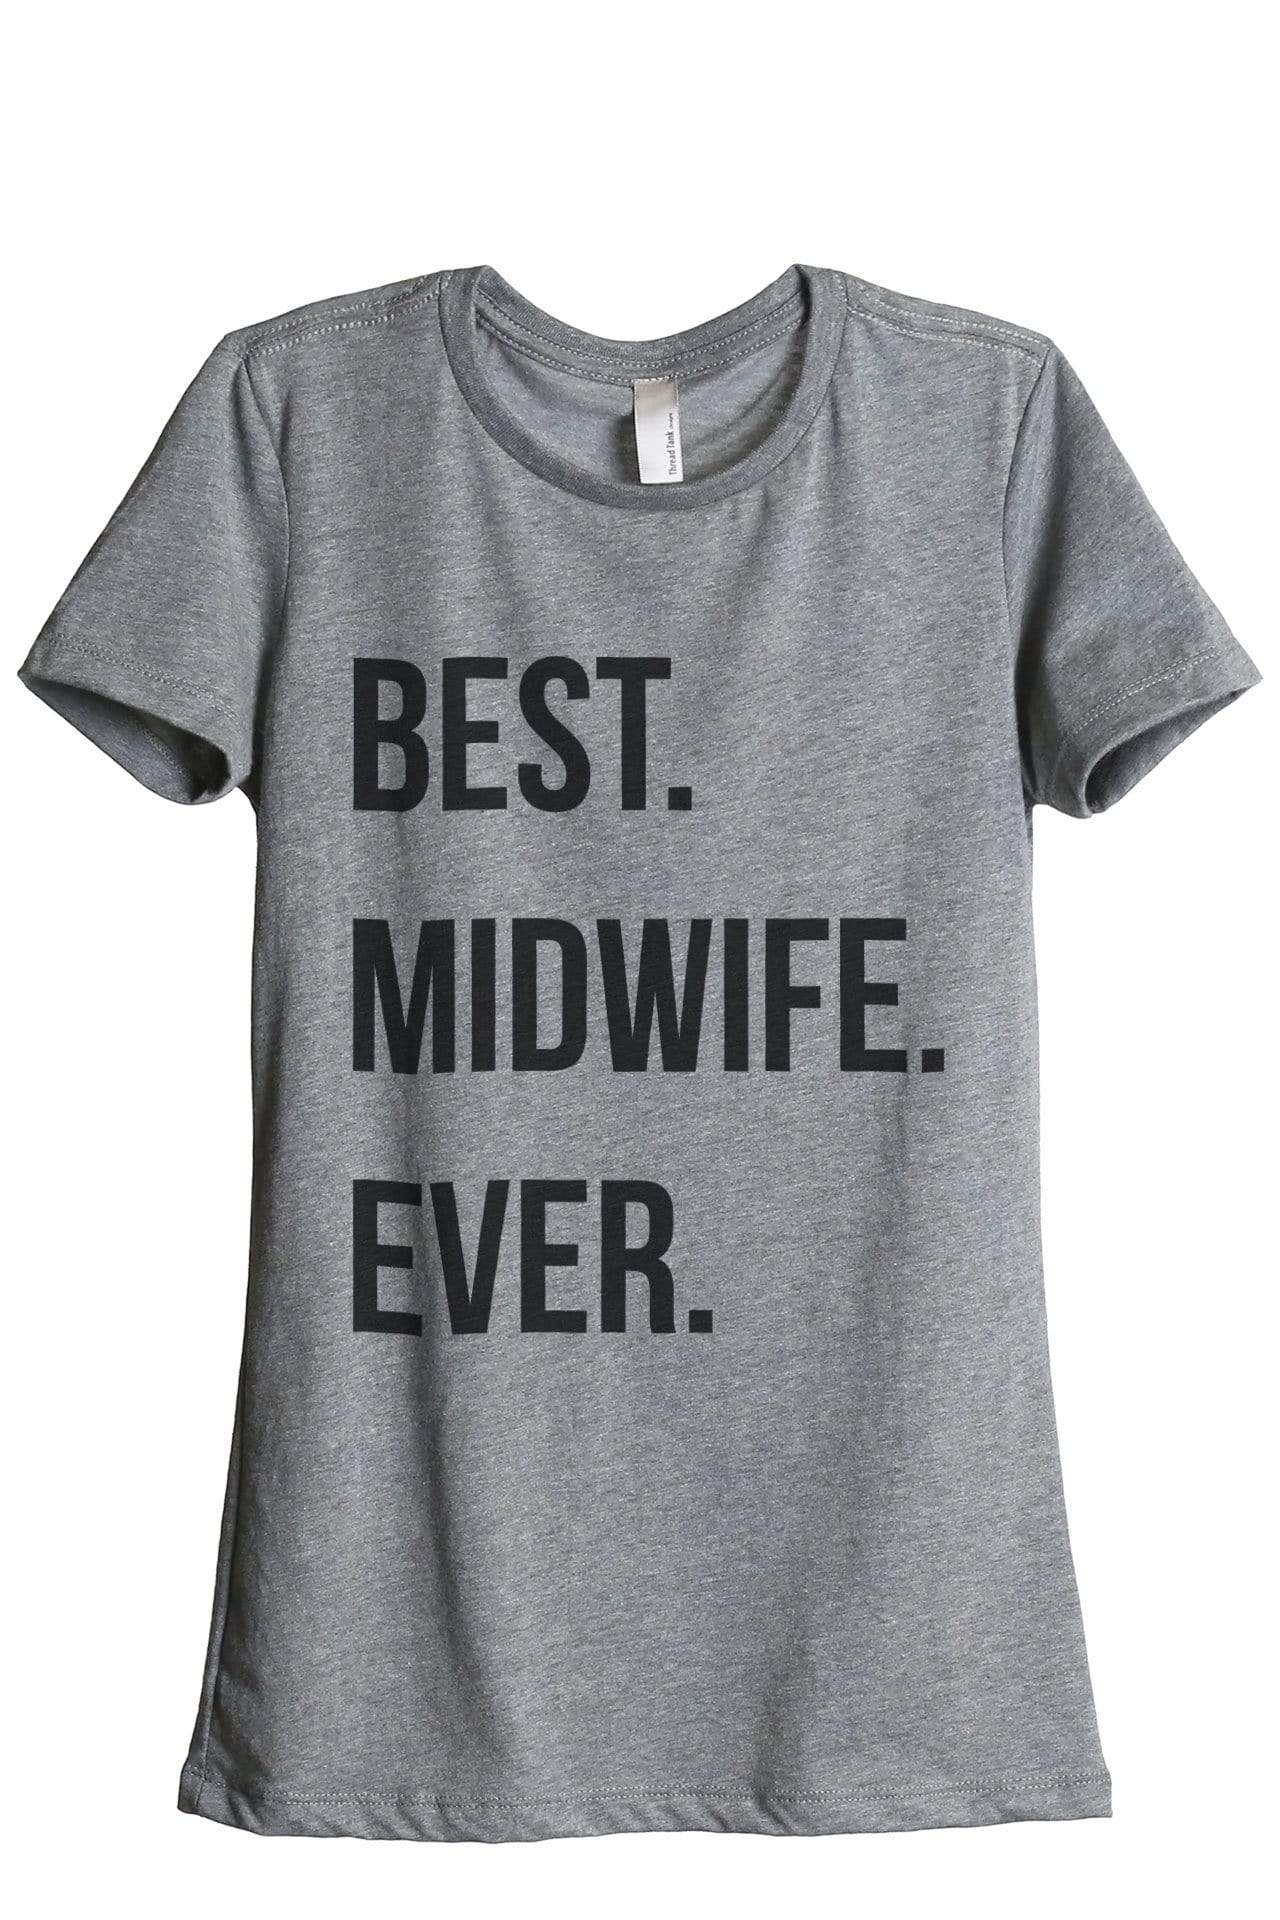 Best Midwife Ever - Thread Tank | Stories You Can Wear | T-Shirts, Tank Tops and Sweatshirts